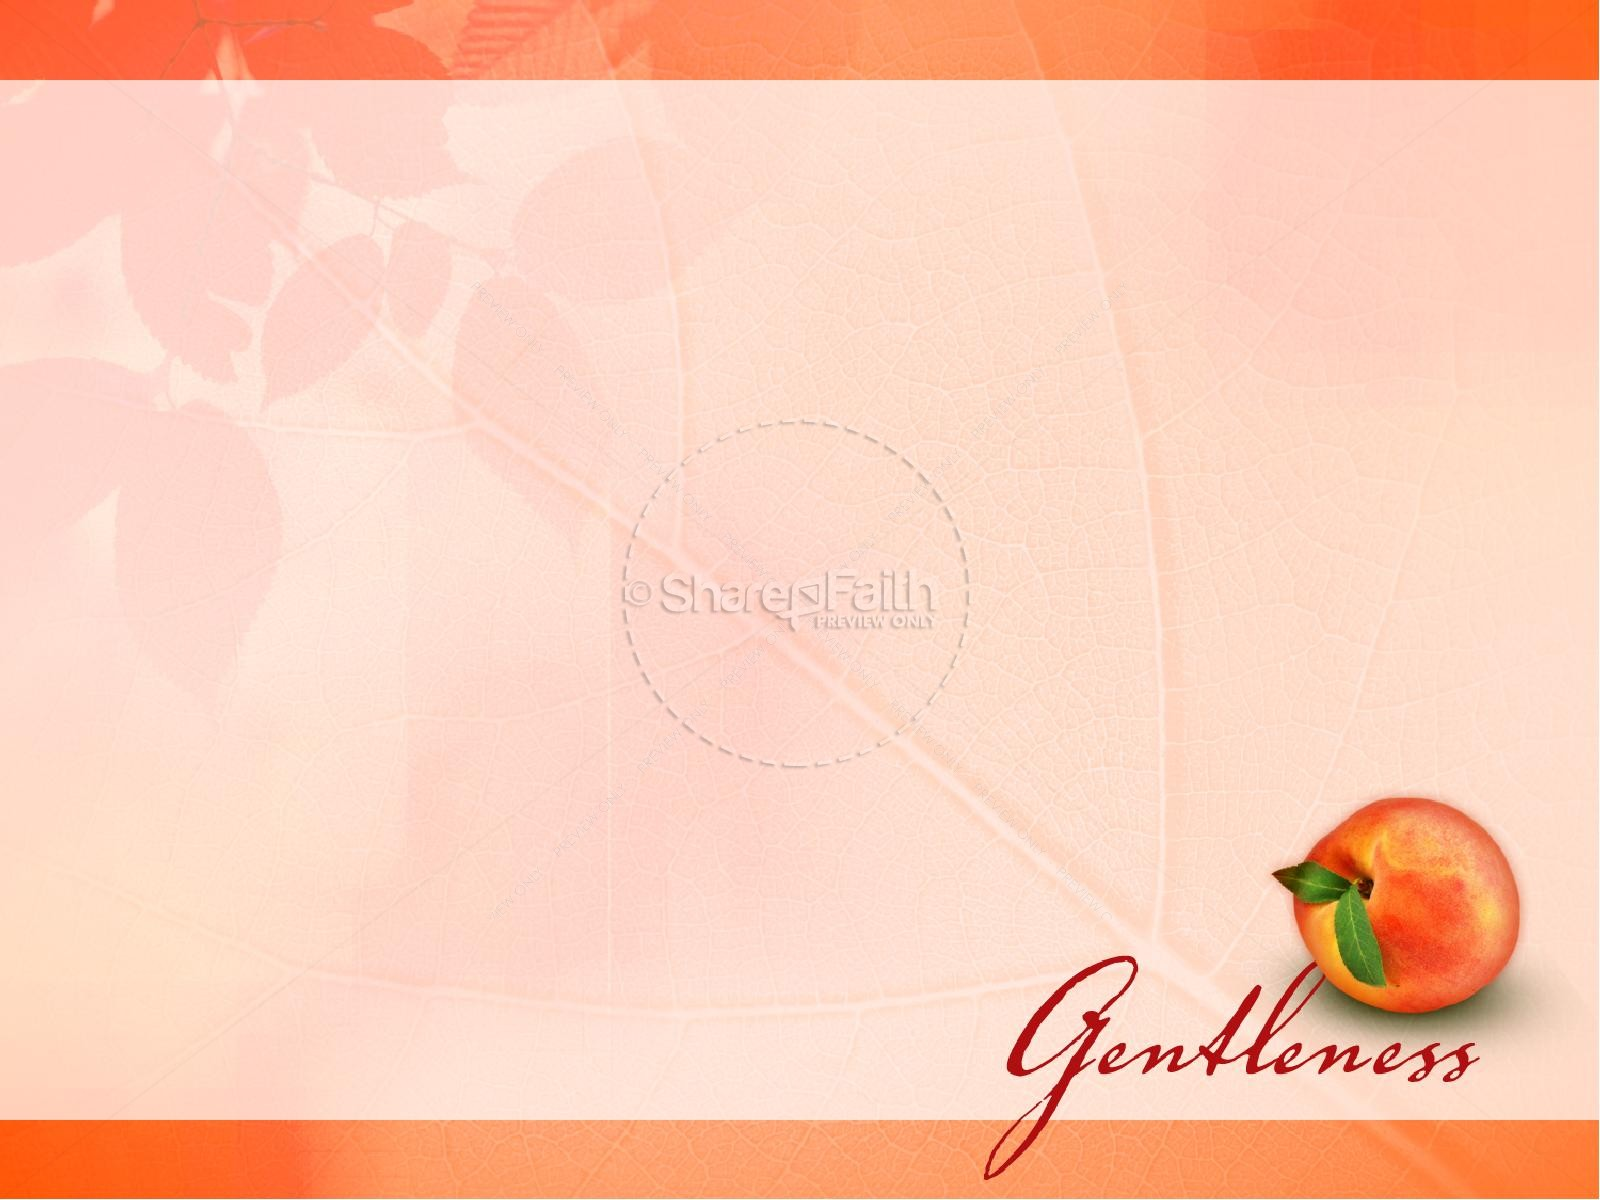 Gentleness Fruit Of The Spirit Powerpoint Template | slide 6